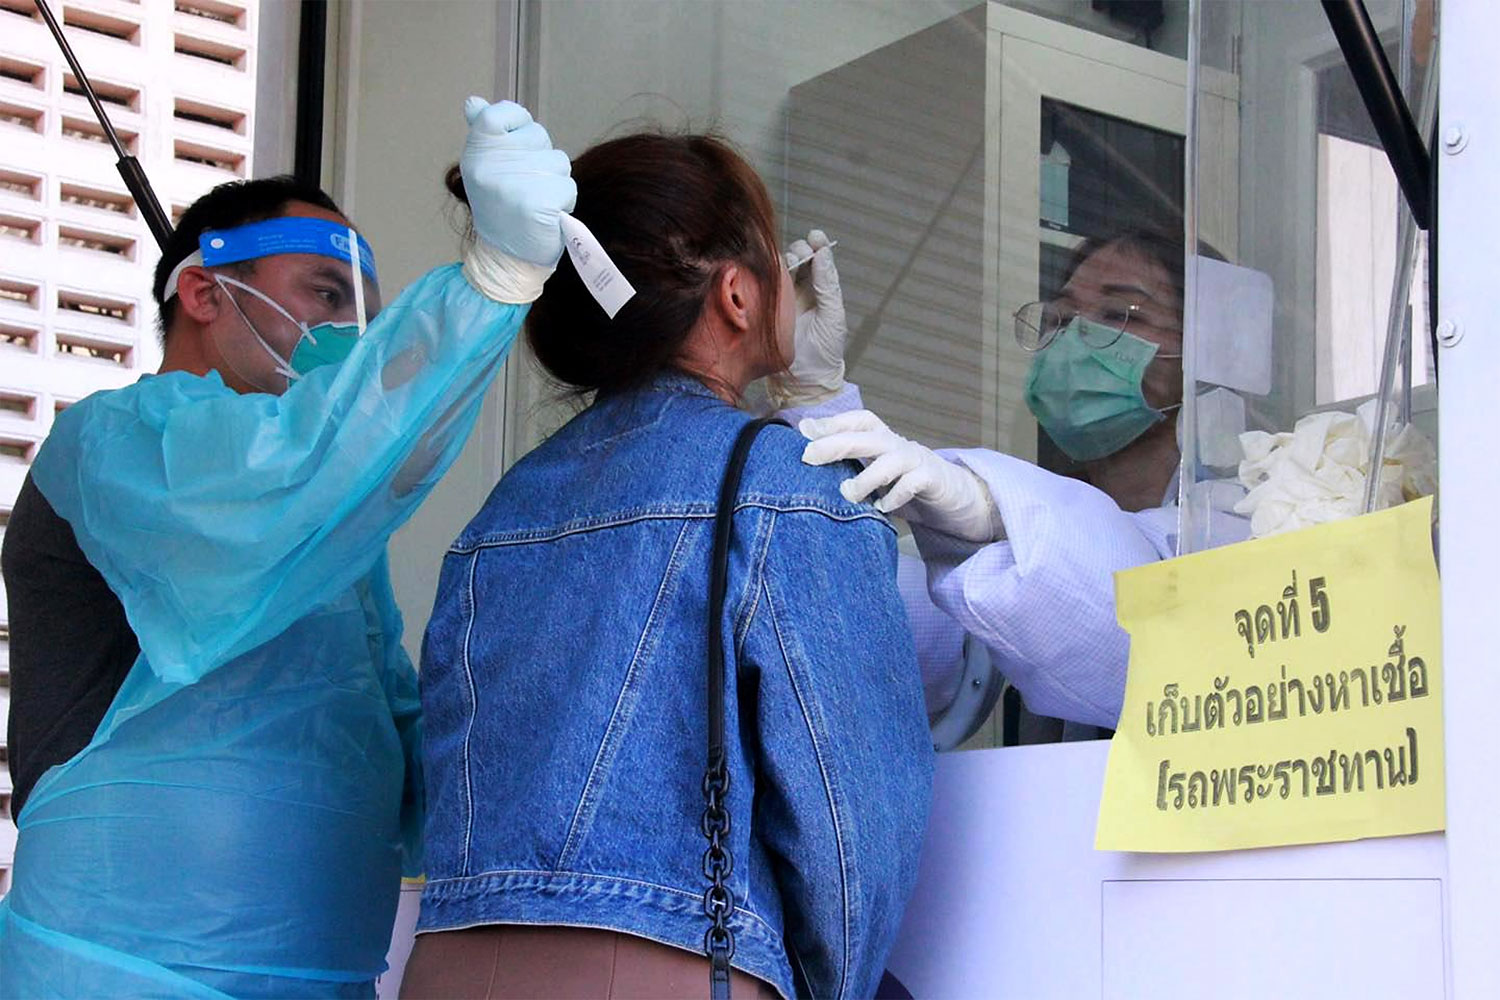 A woman receives a Covid-19 swab test at a mobile test site in Muang district, Chiang Rai on Saturday. The province provided free tests for at-risk people who attended the same concert as an infected person who illegally entered the kingdom through natural channels.